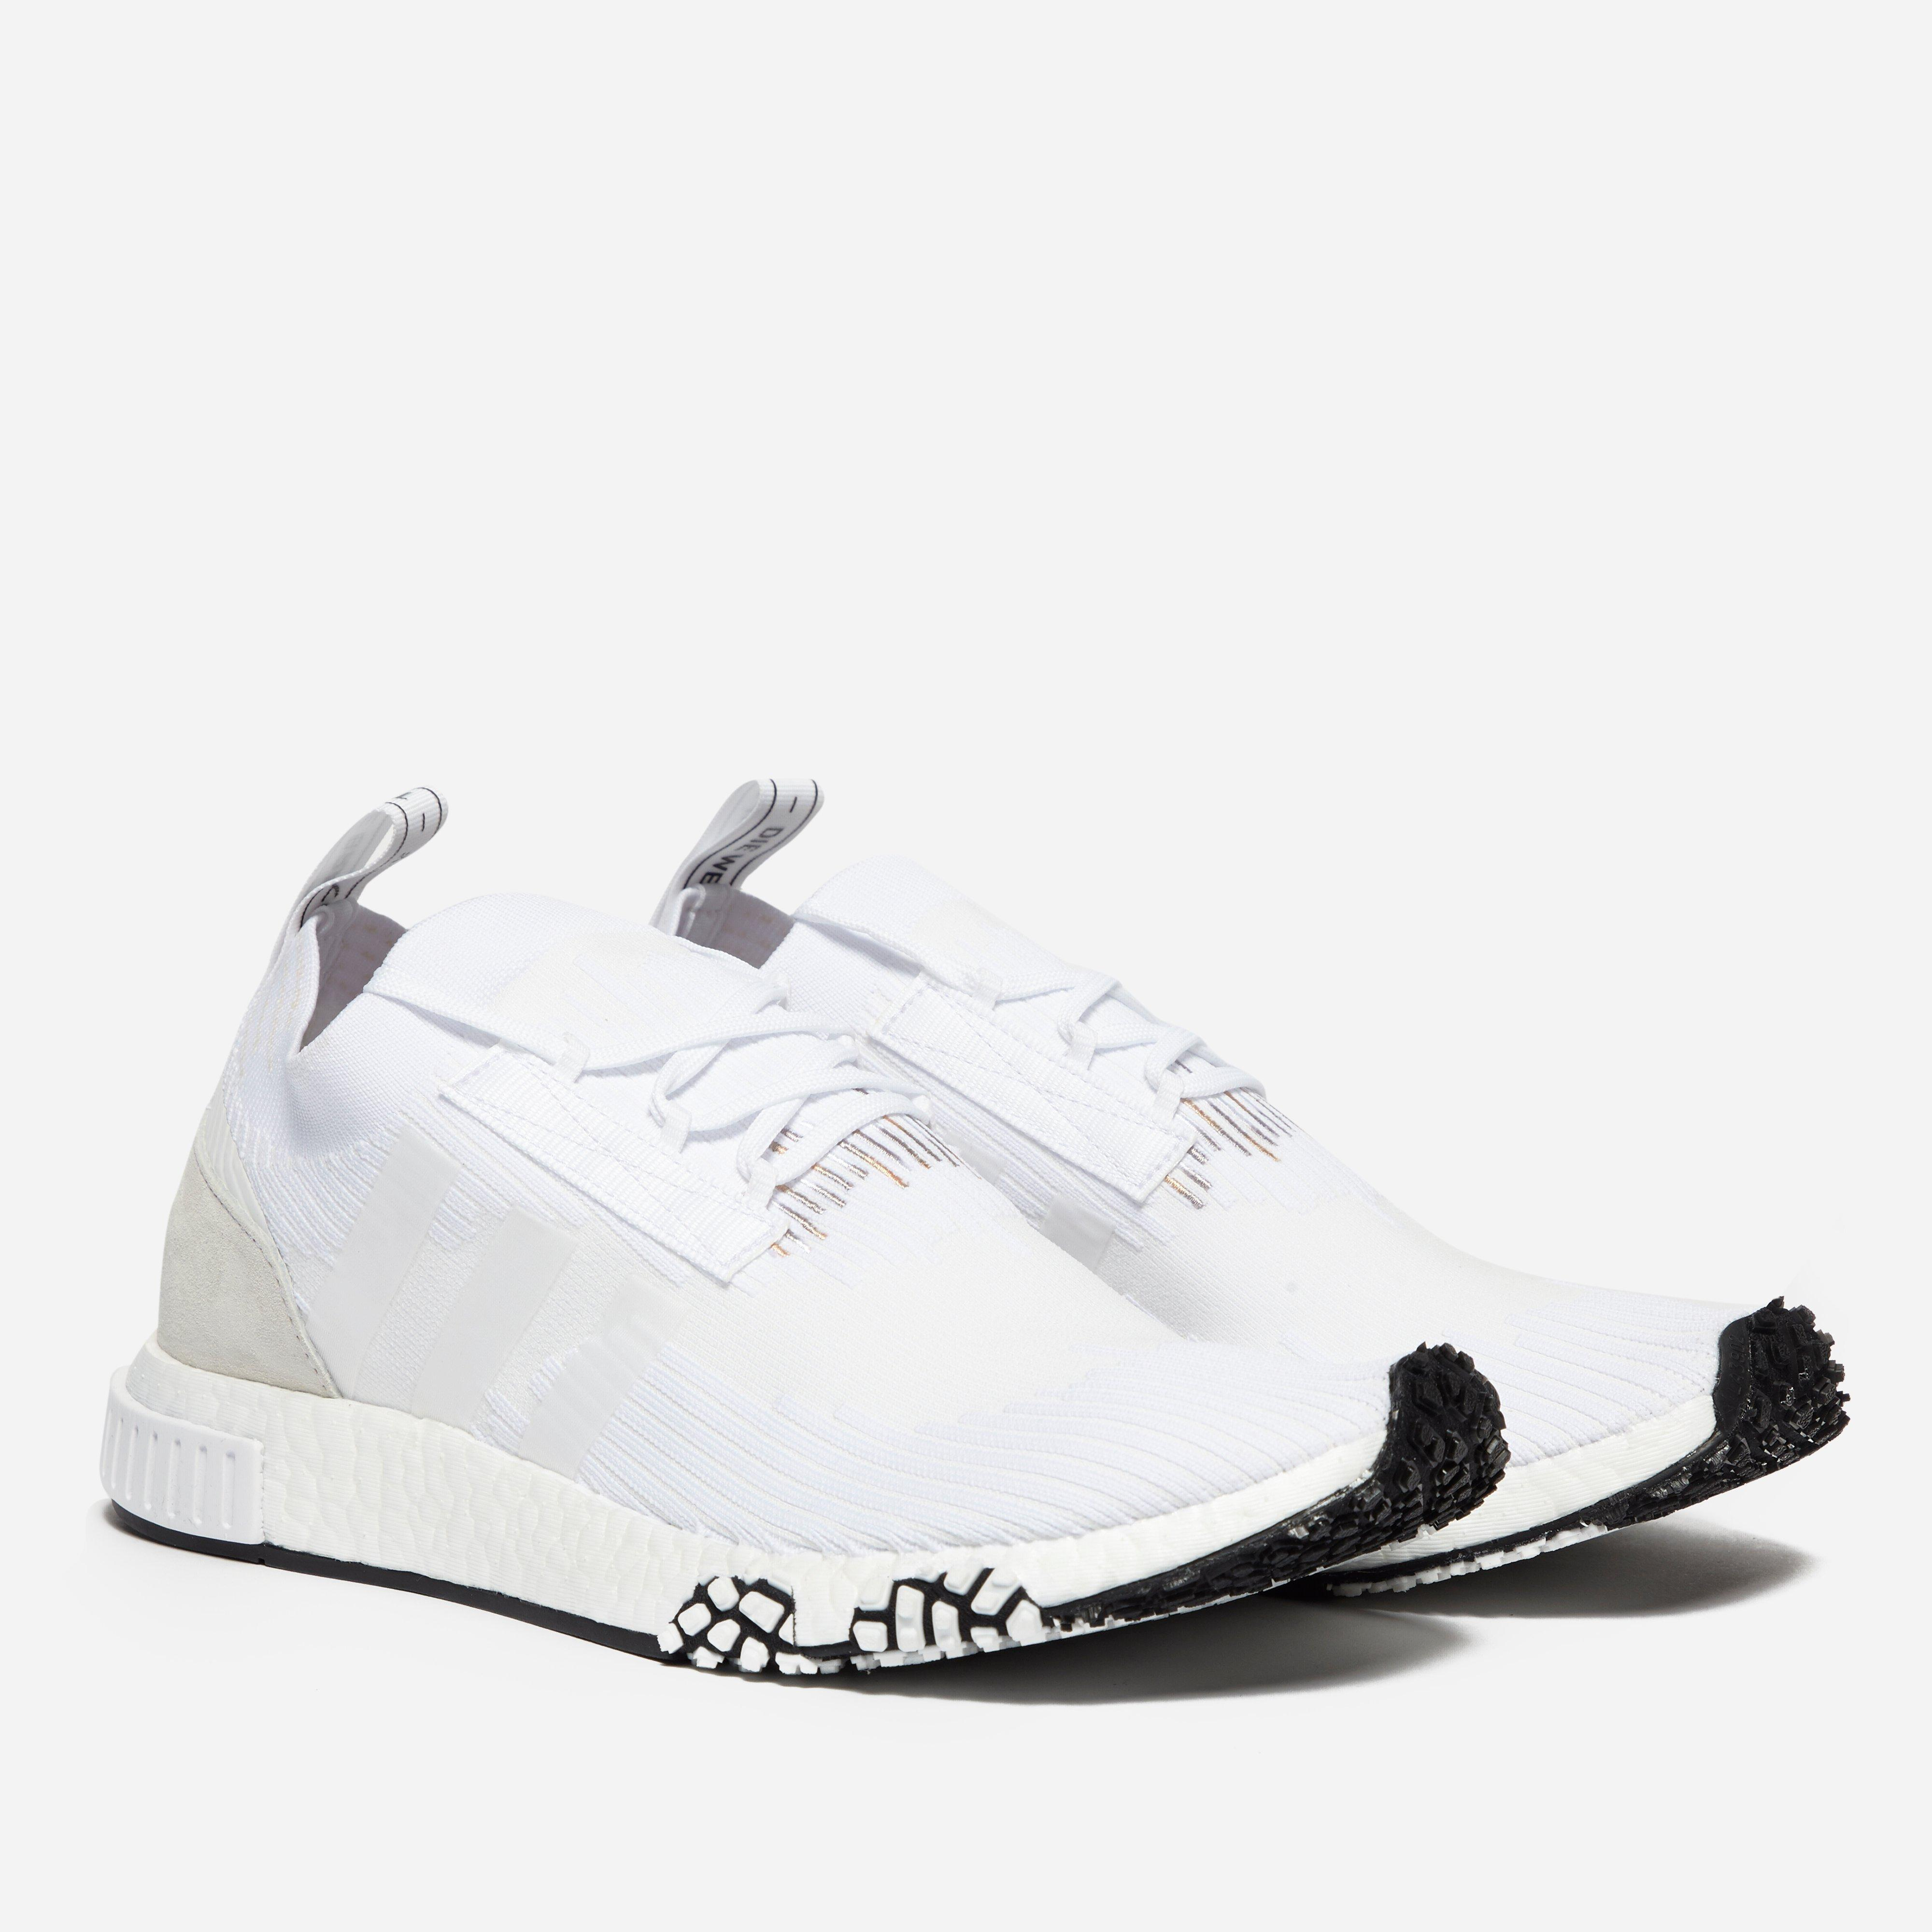 bb3d9a88c adidas Originals Nmd Racer Pk in White for Men - Save 62% - Lyst